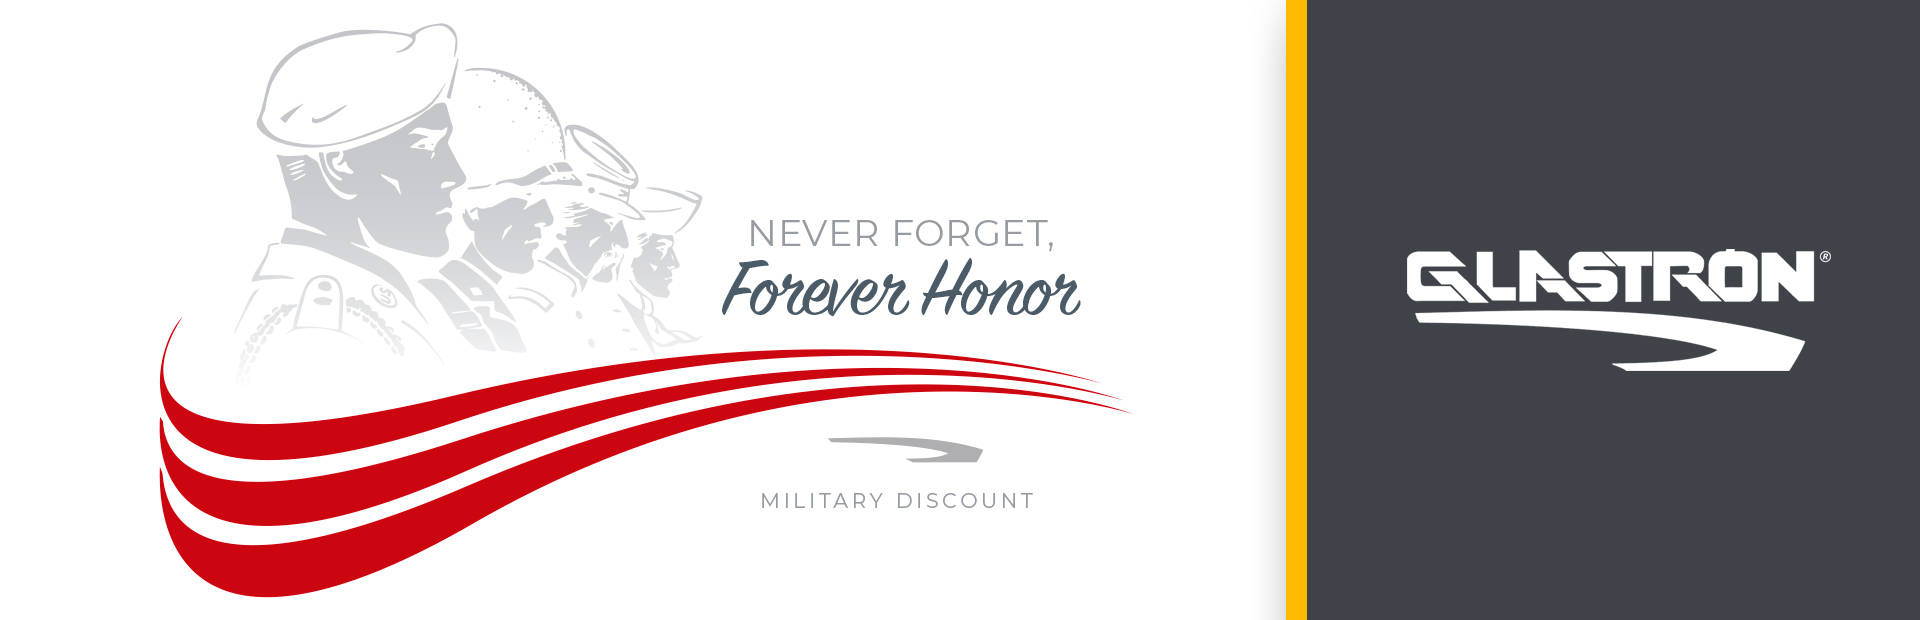 Glastron: Never Forget, Forever Honor Military Discount